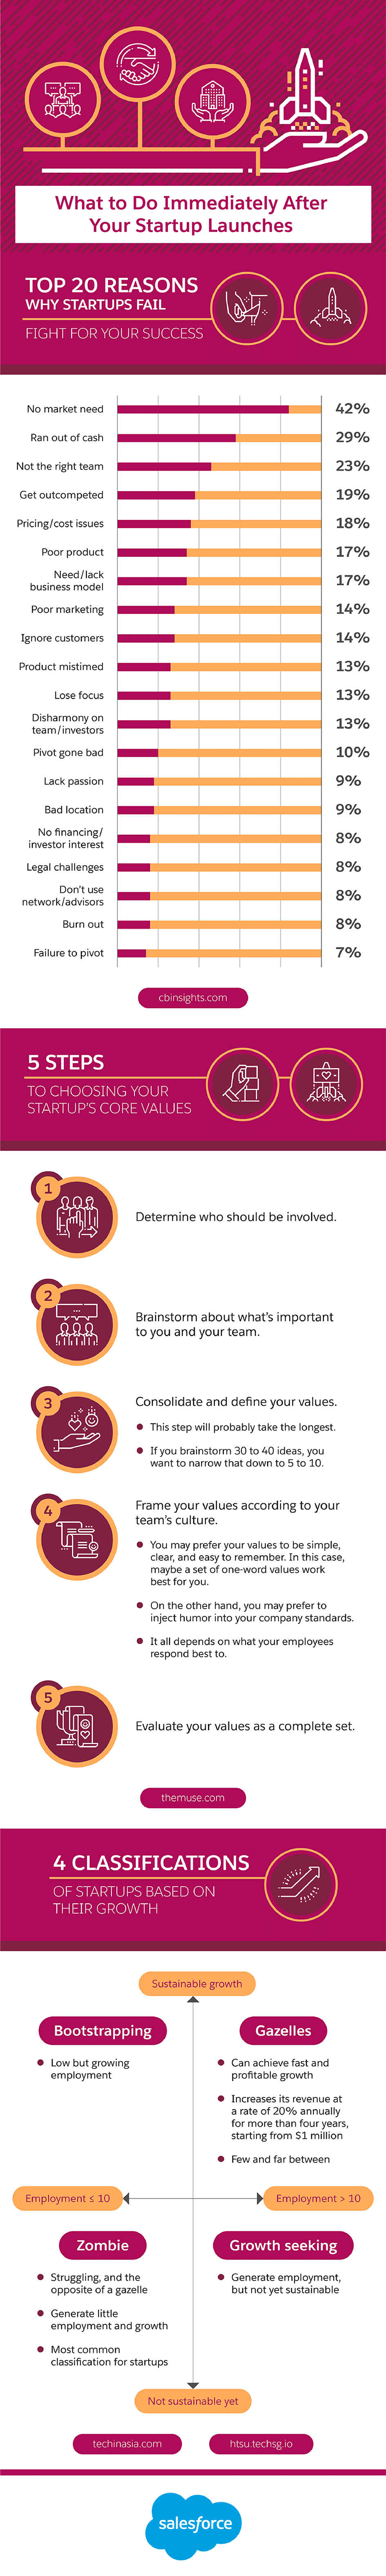 What to Do Immediately After Your Startup Launches - infographic